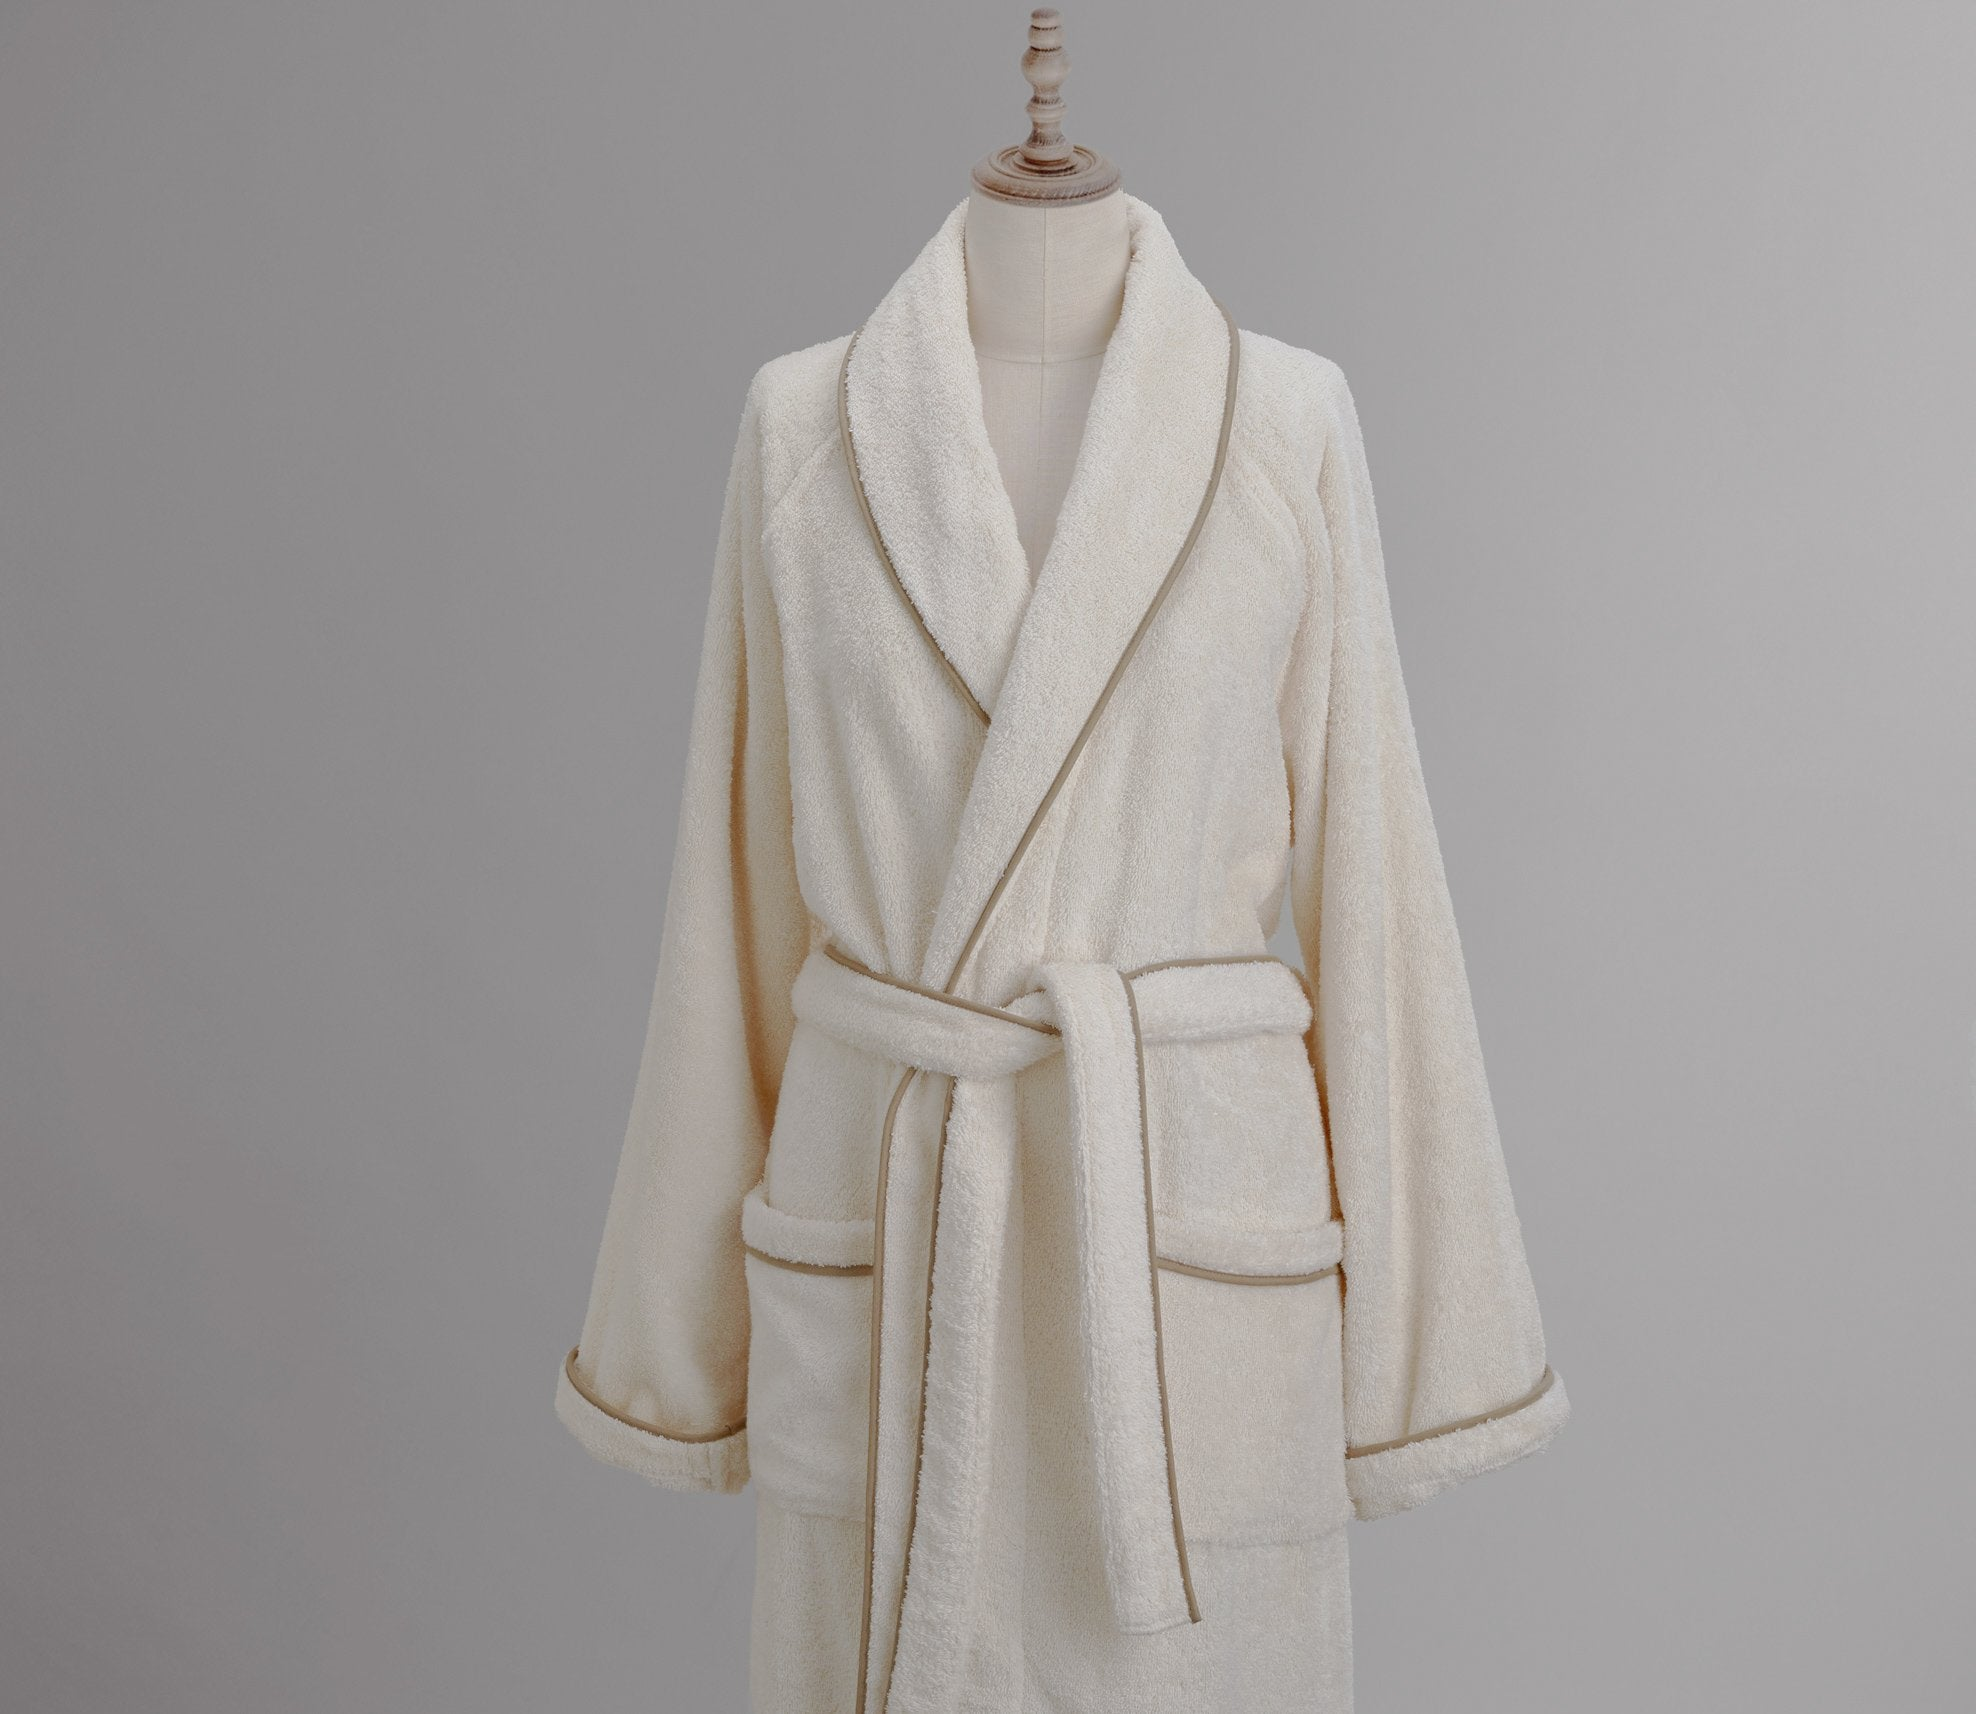 Cairo Robe Ivory with Custom Trim Product Image 1